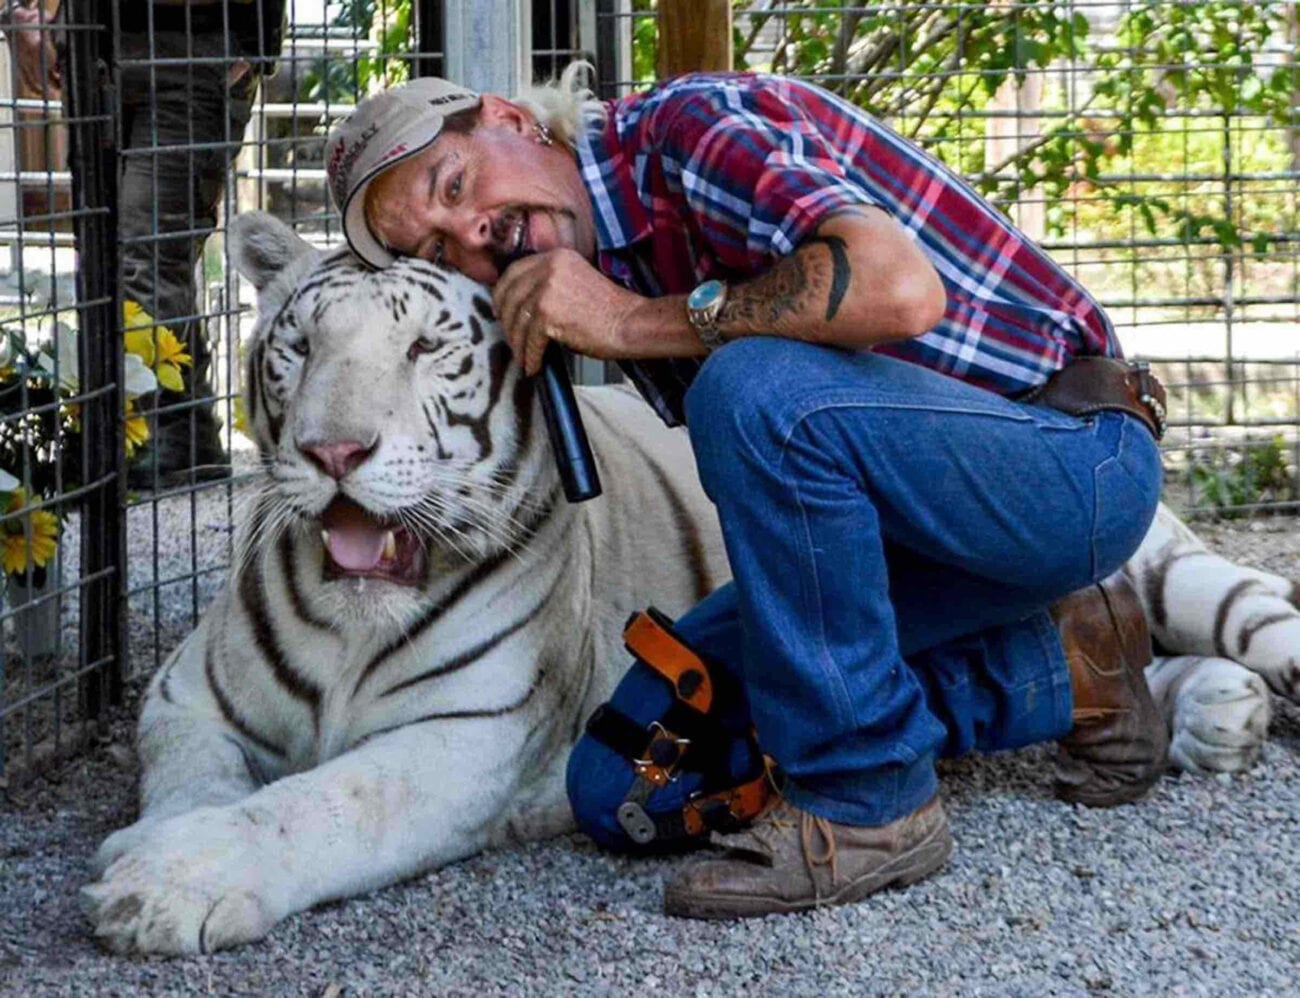 Joe Exotic impersonators are on the rise and some of them are so good we're fairly convinced it could confuse Joe's husbands.